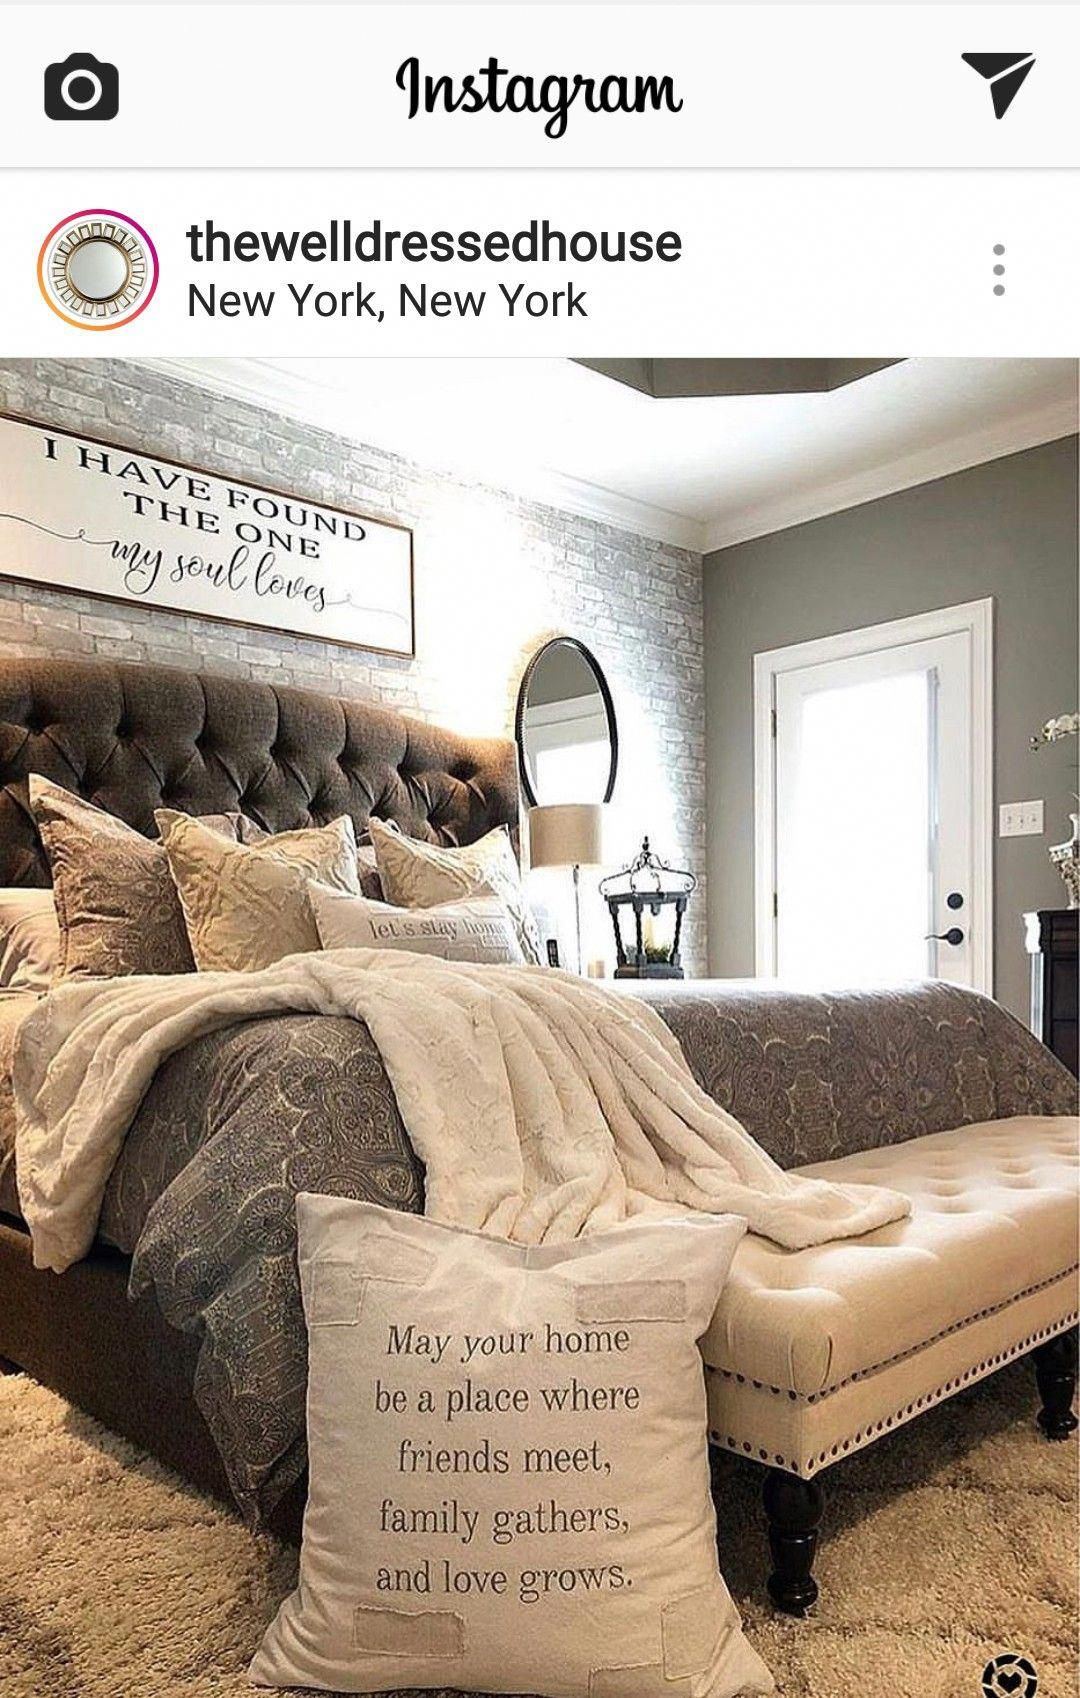 Bedroom Ideas Cozy To Elegance Advice Styling Post Number 7381298293 Amazing Weekend Room Dec Master Bedroom Makeover Master Bedrooms Decor Bedroom Makeover